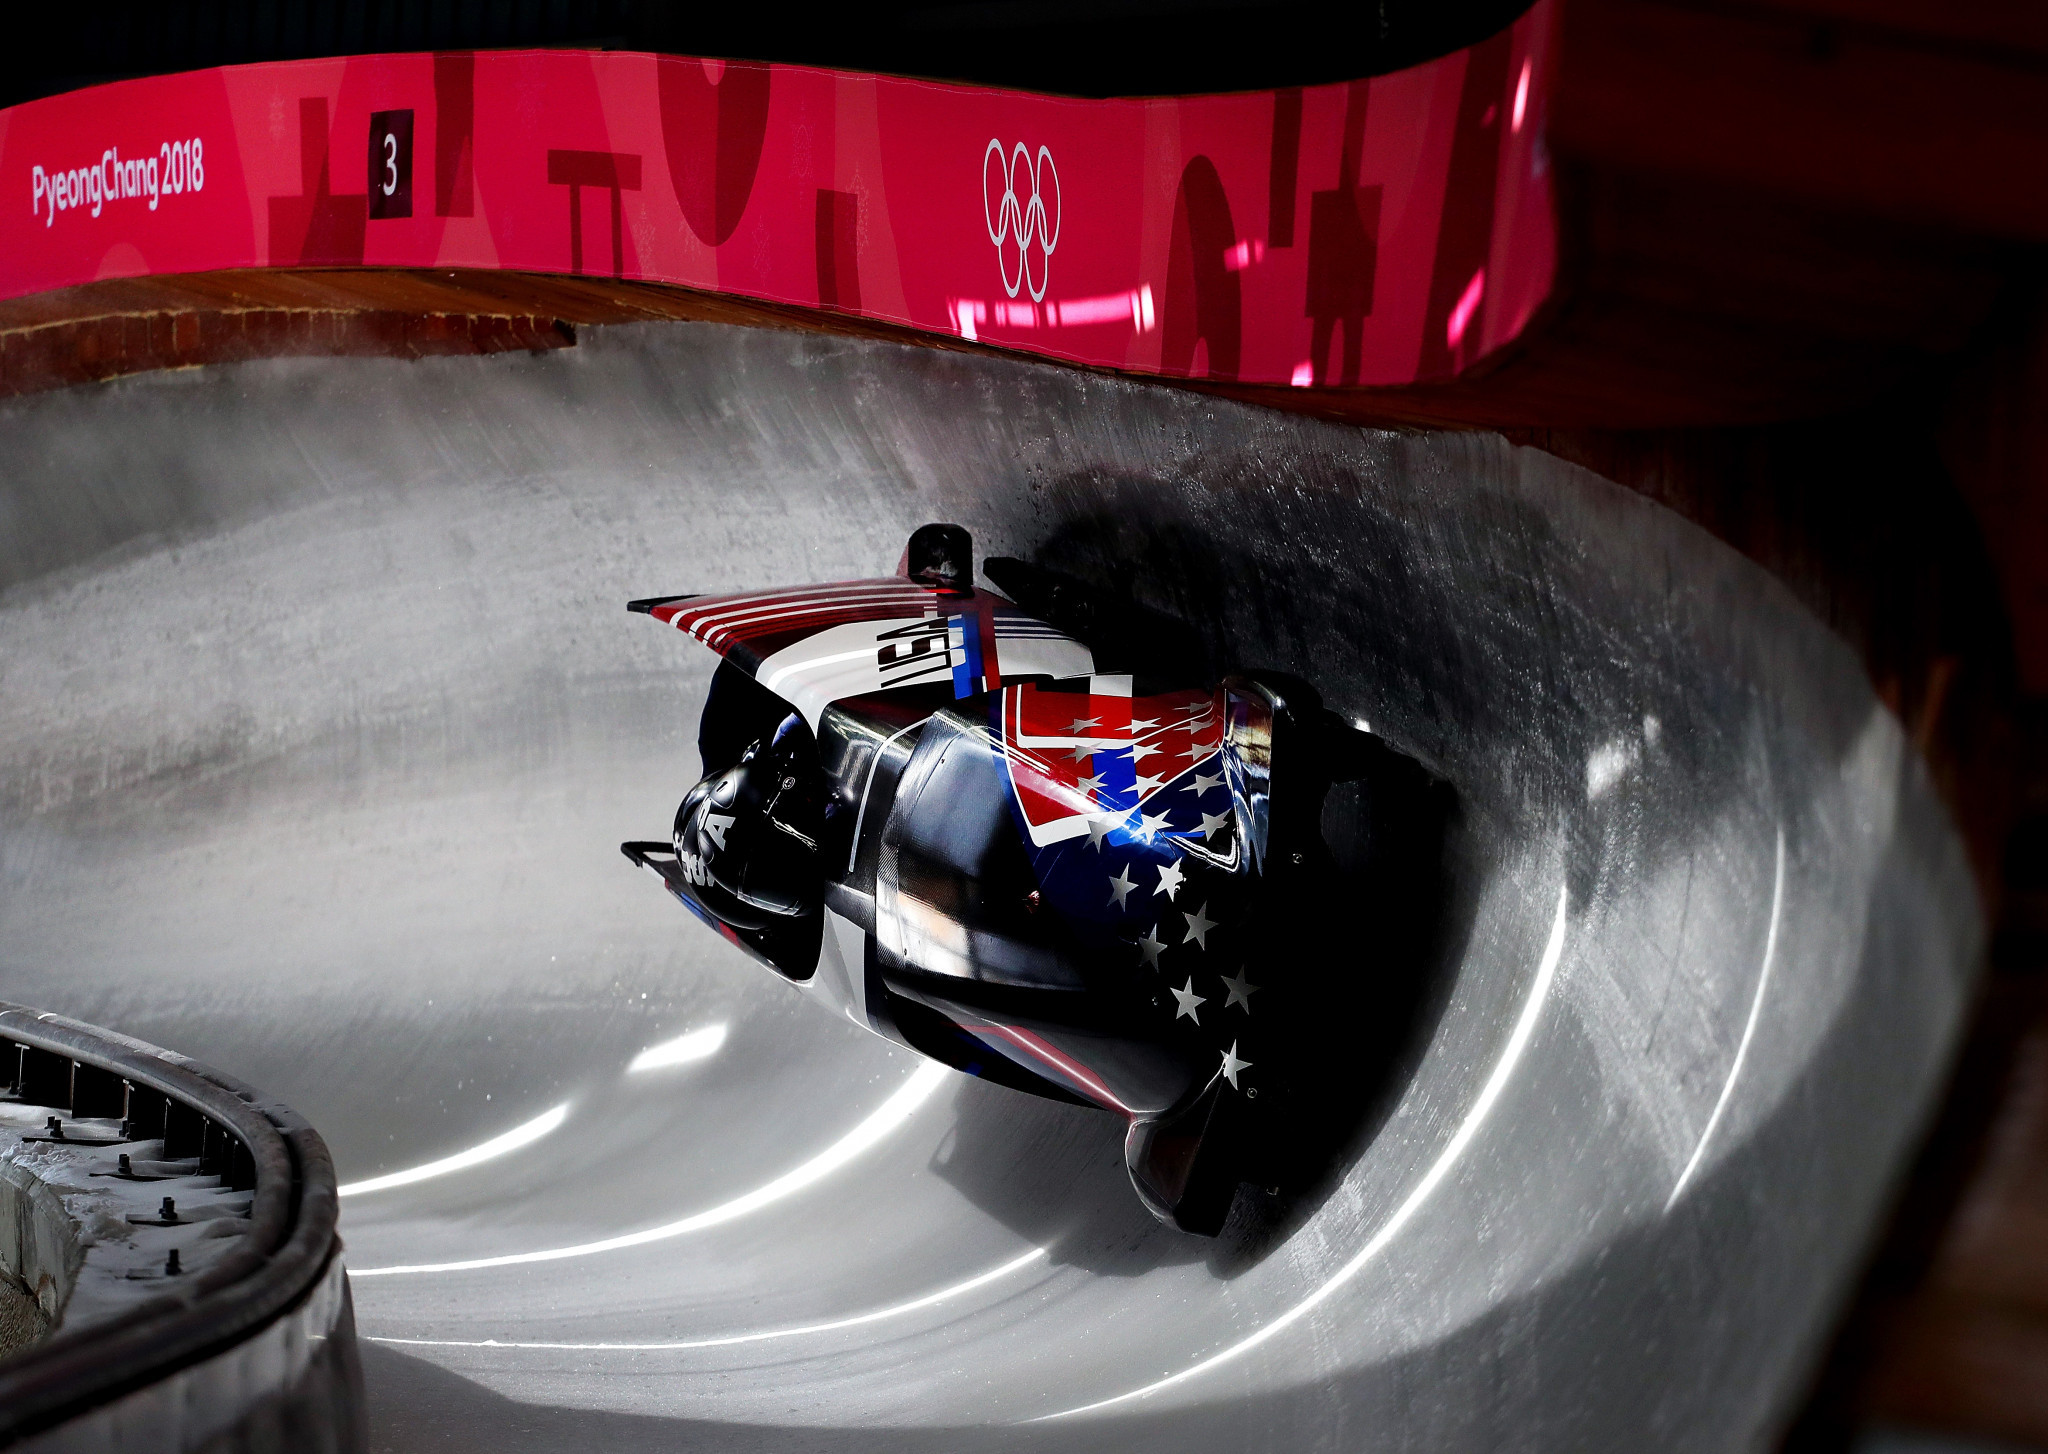 International Bobsleigh and Skeleton Federation budgets more than $700,000 for COVID-19 in current financial year